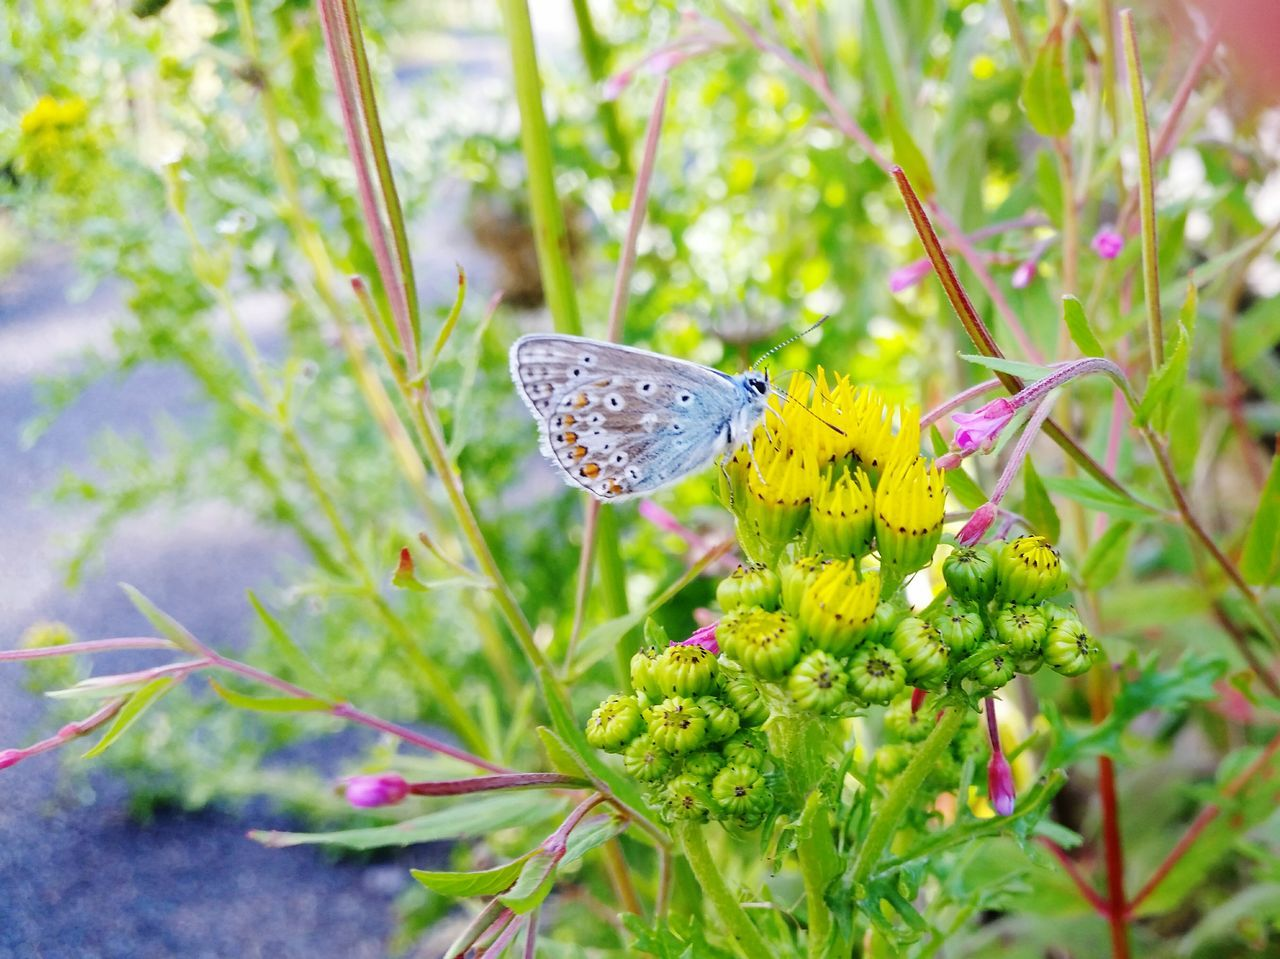 Butterfly Blue Butterfly Yellow Flower Insect Flying Insect Nature Common Blue Butterfly Common Blue Microworld Blue Sunlit Beauty Patterns In Nature Beauty In Nature No People Outdoors Day